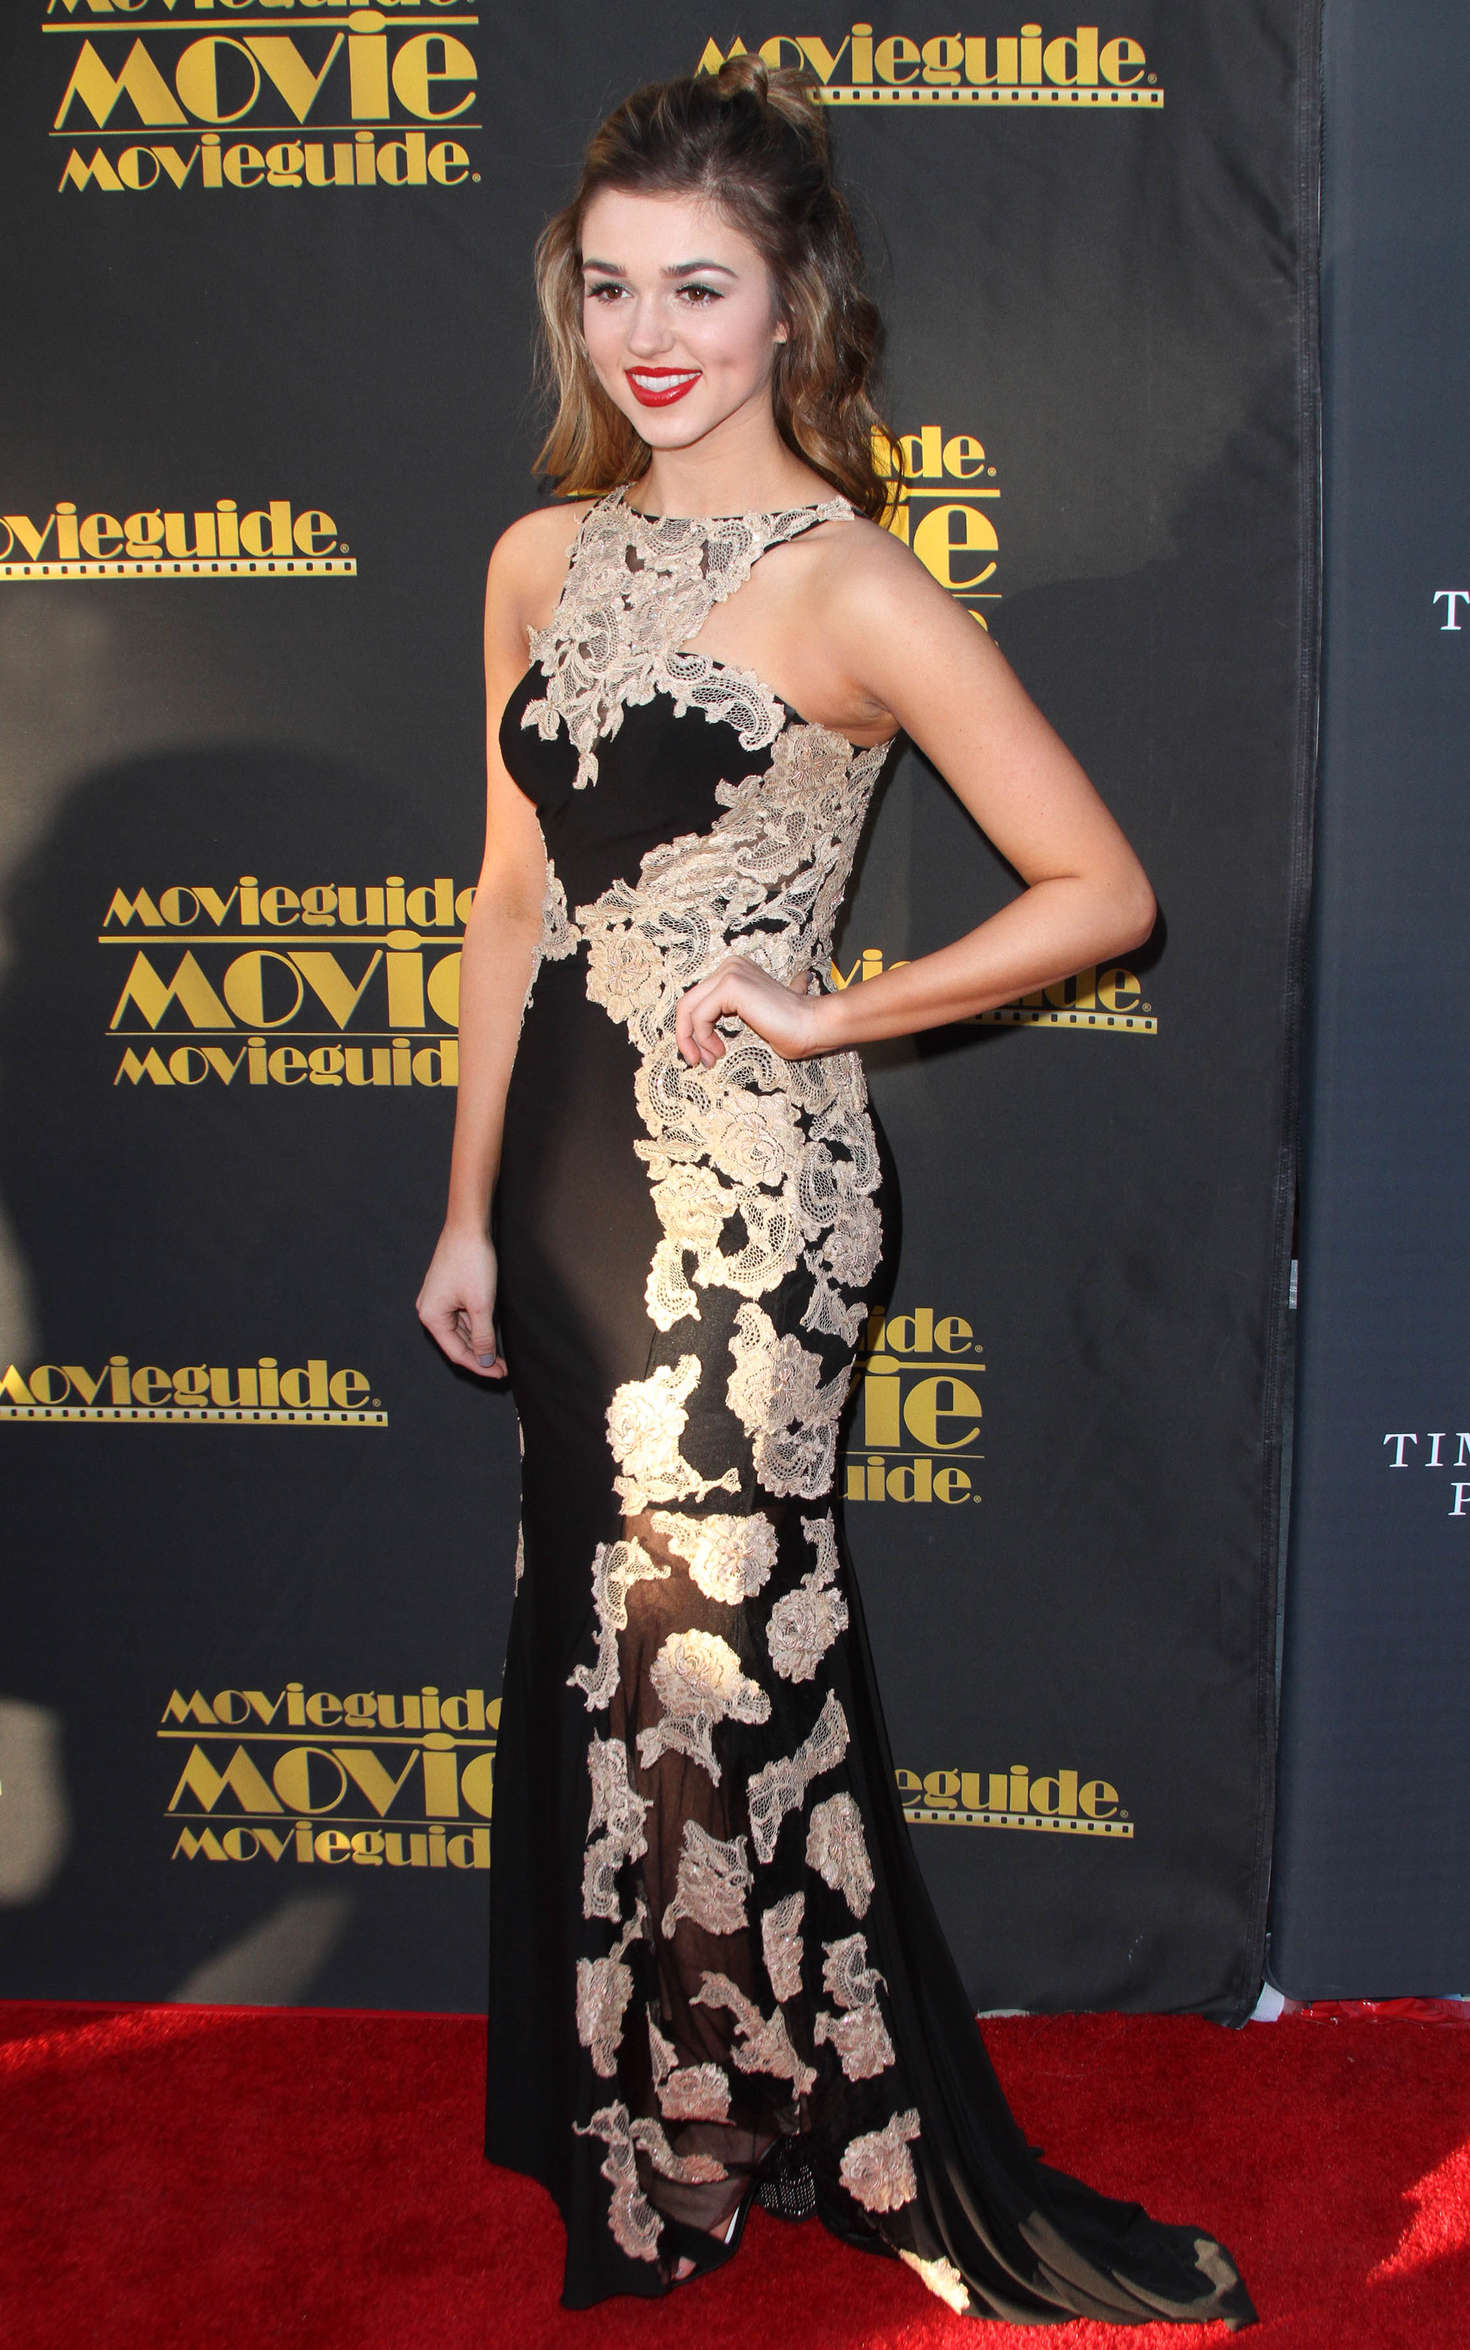 Sadie Robertson Annual MovieGuide Awards in Los Angeles